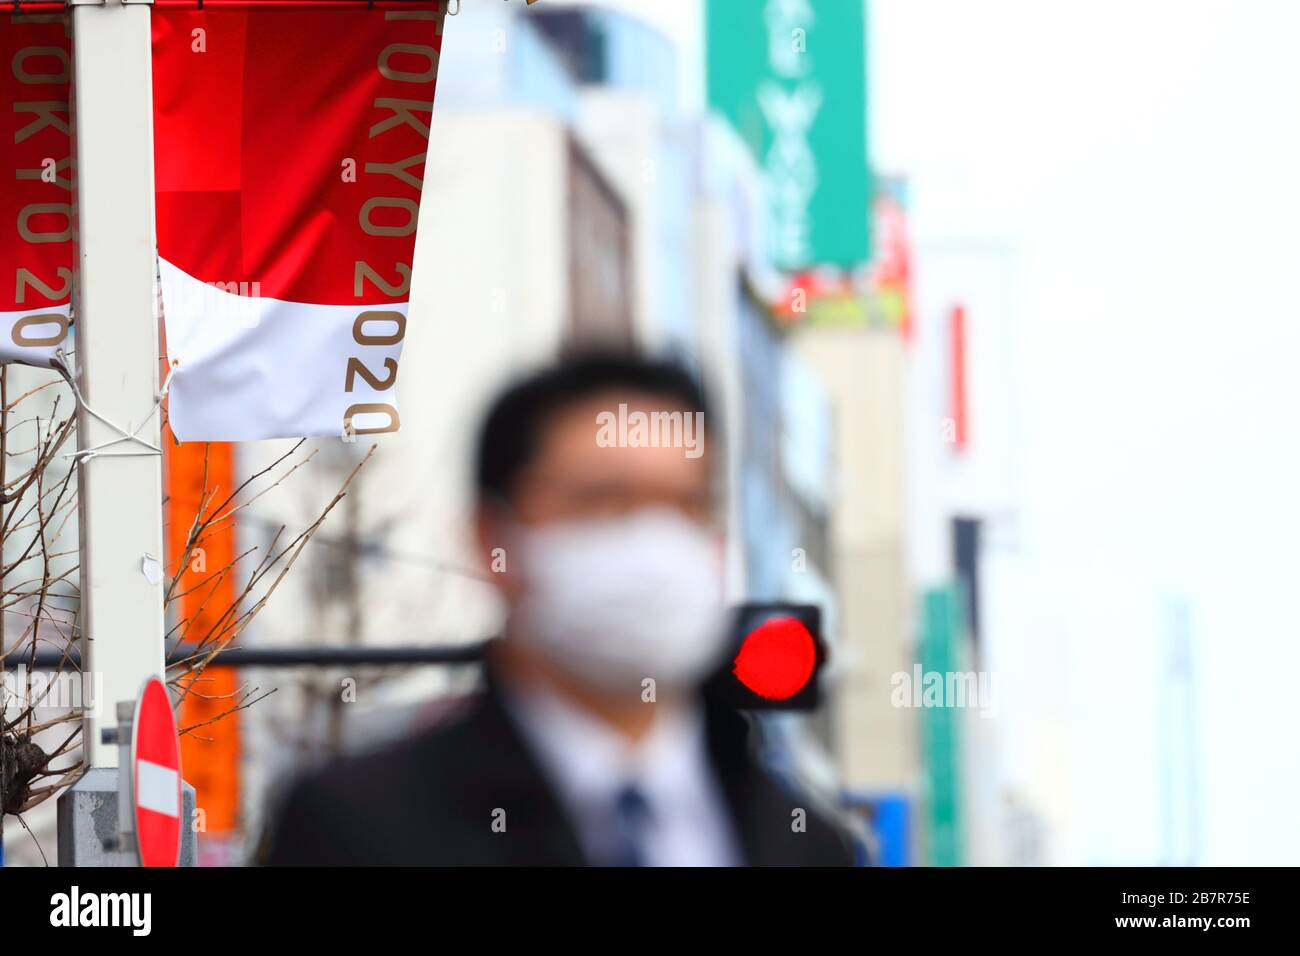 A man wearing a protective face mask walks in front of an Olympic Banner of Tokyo 2020 in Shinjuku, Tokyo, Japan on March 17, 2020. Credit: Naoki Nishimura/AFLO SPORT/Alamy Live News Stock Photo